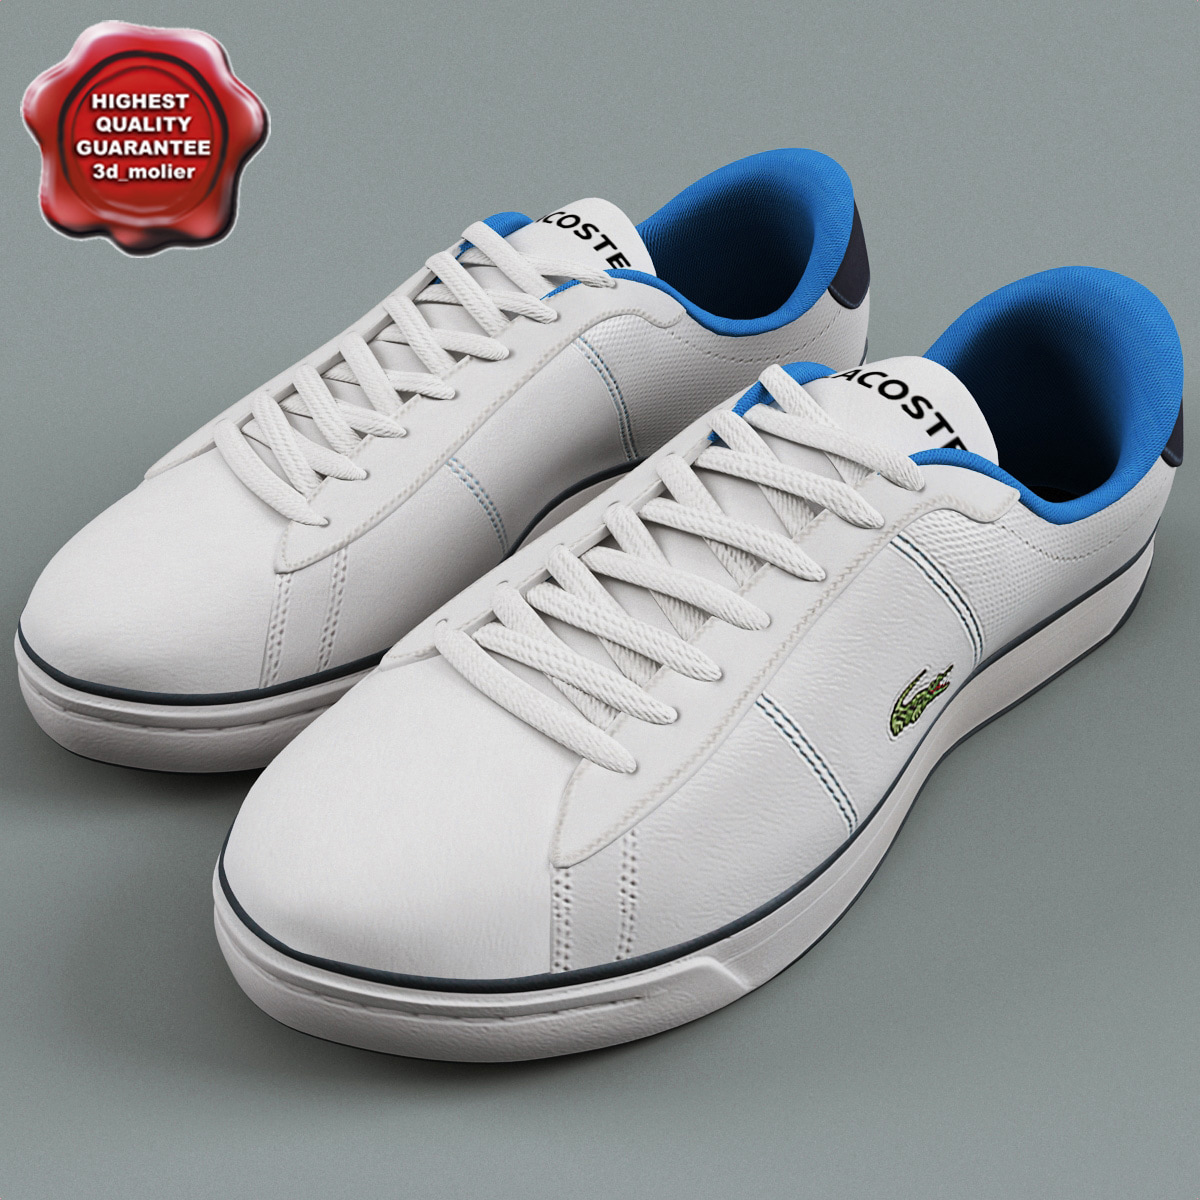 3d beckett sneakers lacoste